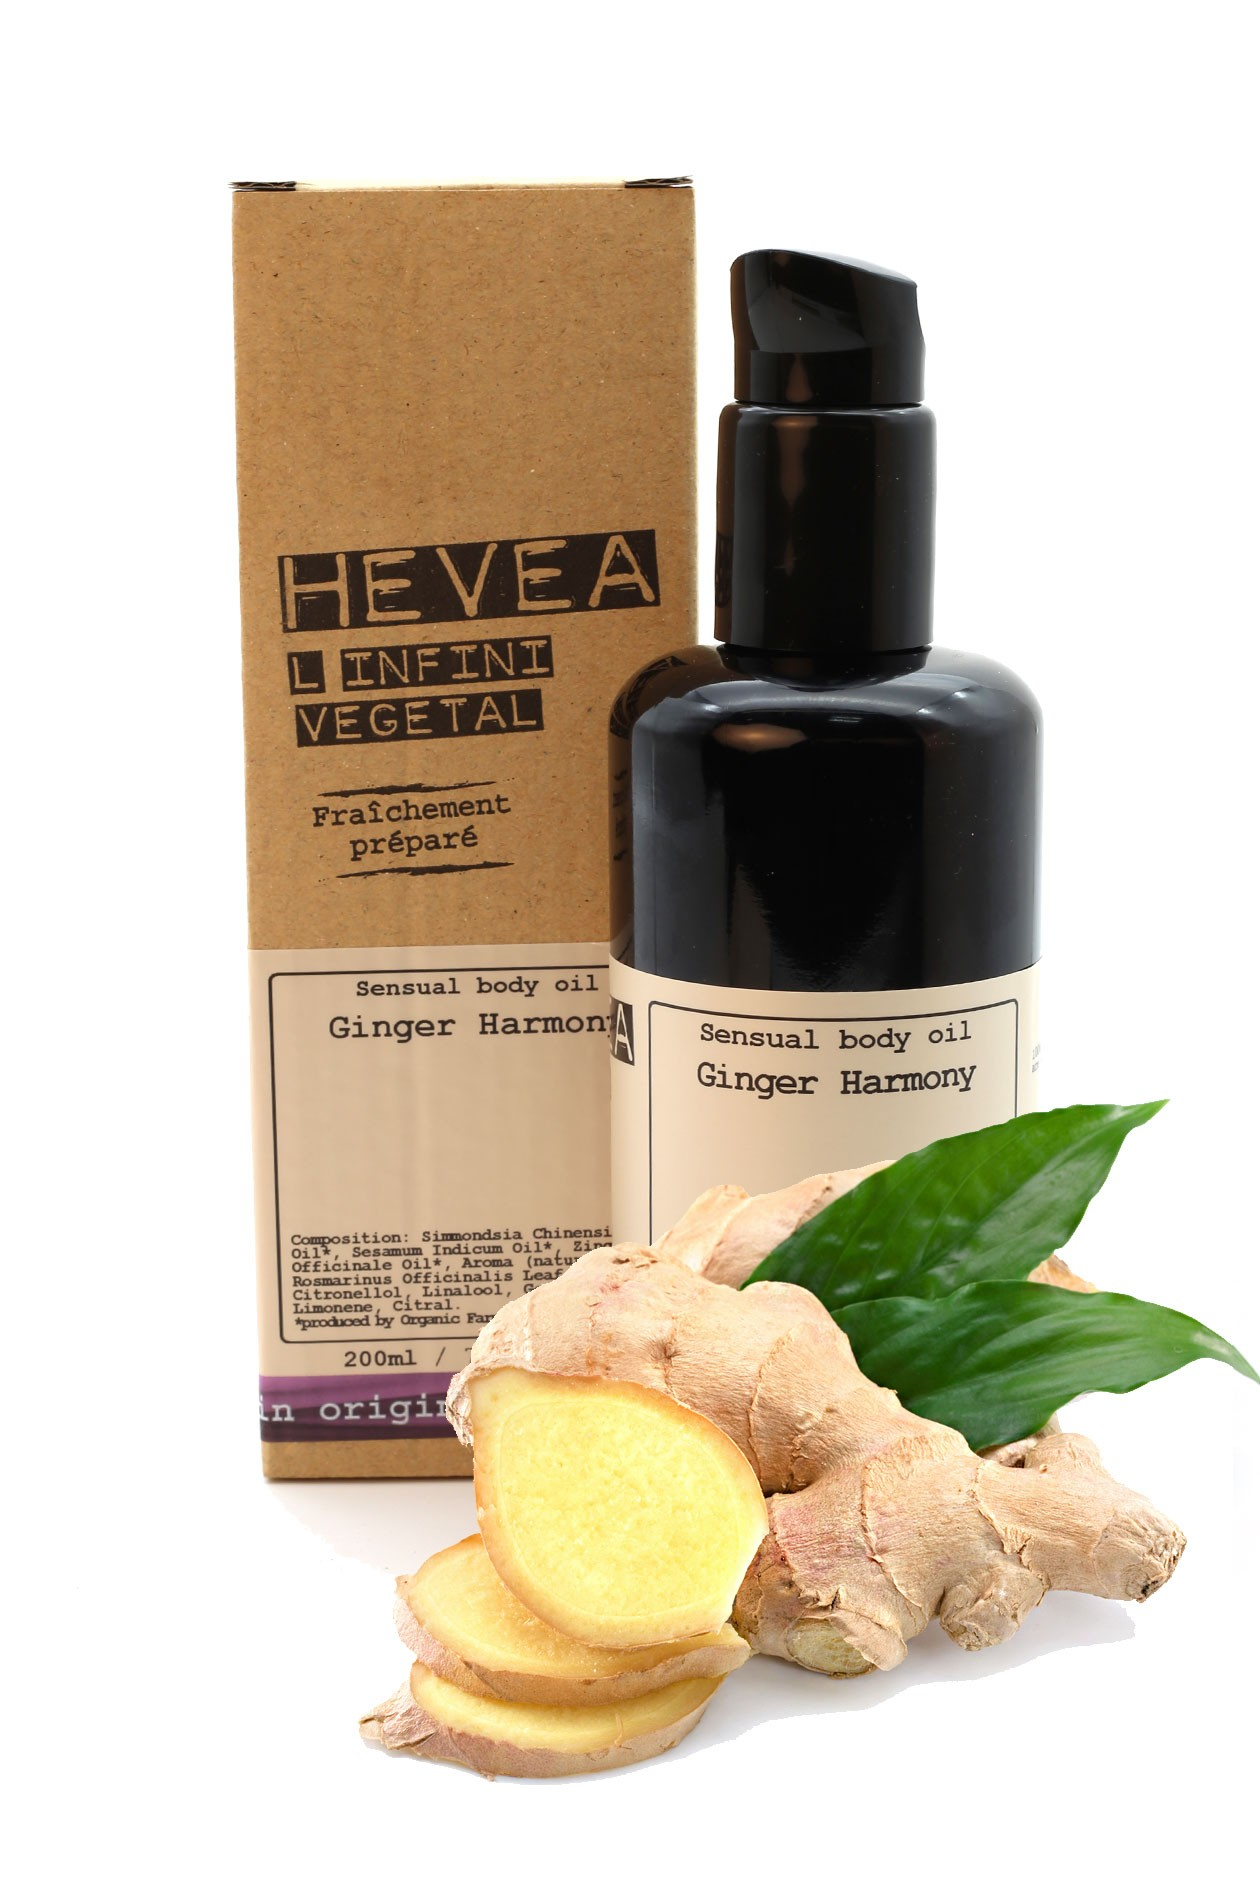 What product is ginger in harmony with? 31